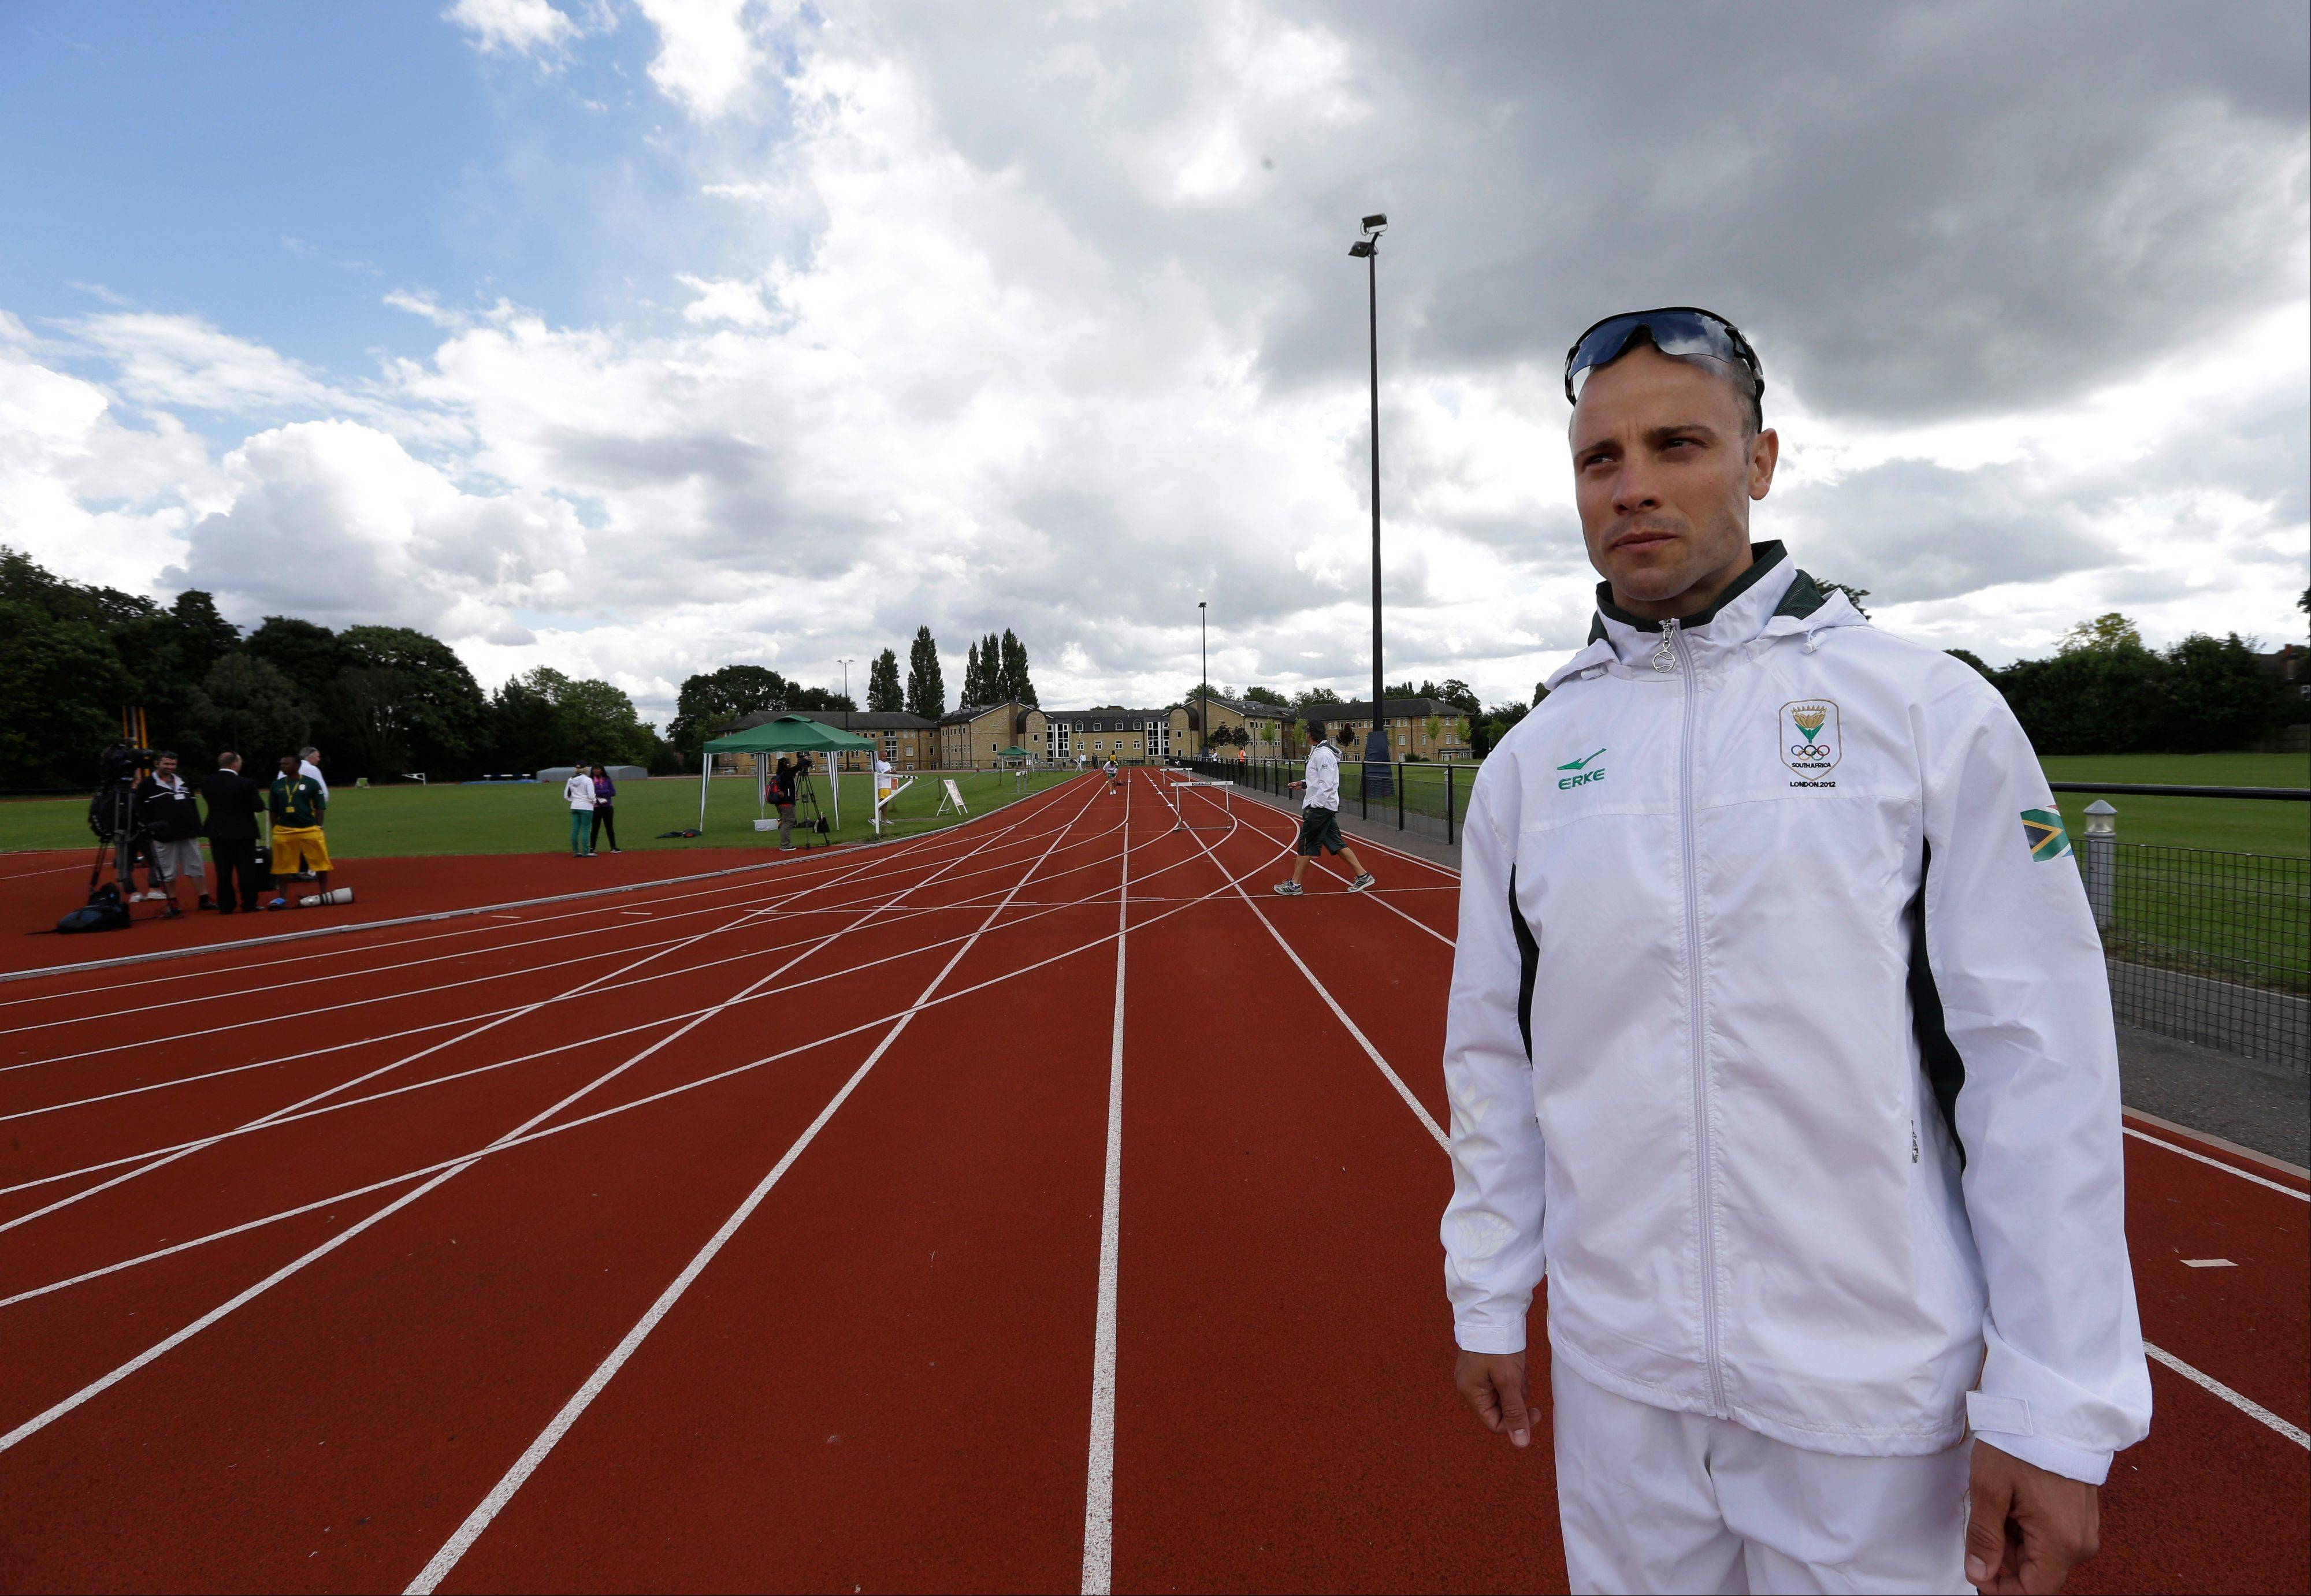 South Africa's sprinter Oscar Pistorius will be the first amputee athlete to run at any Olympics.